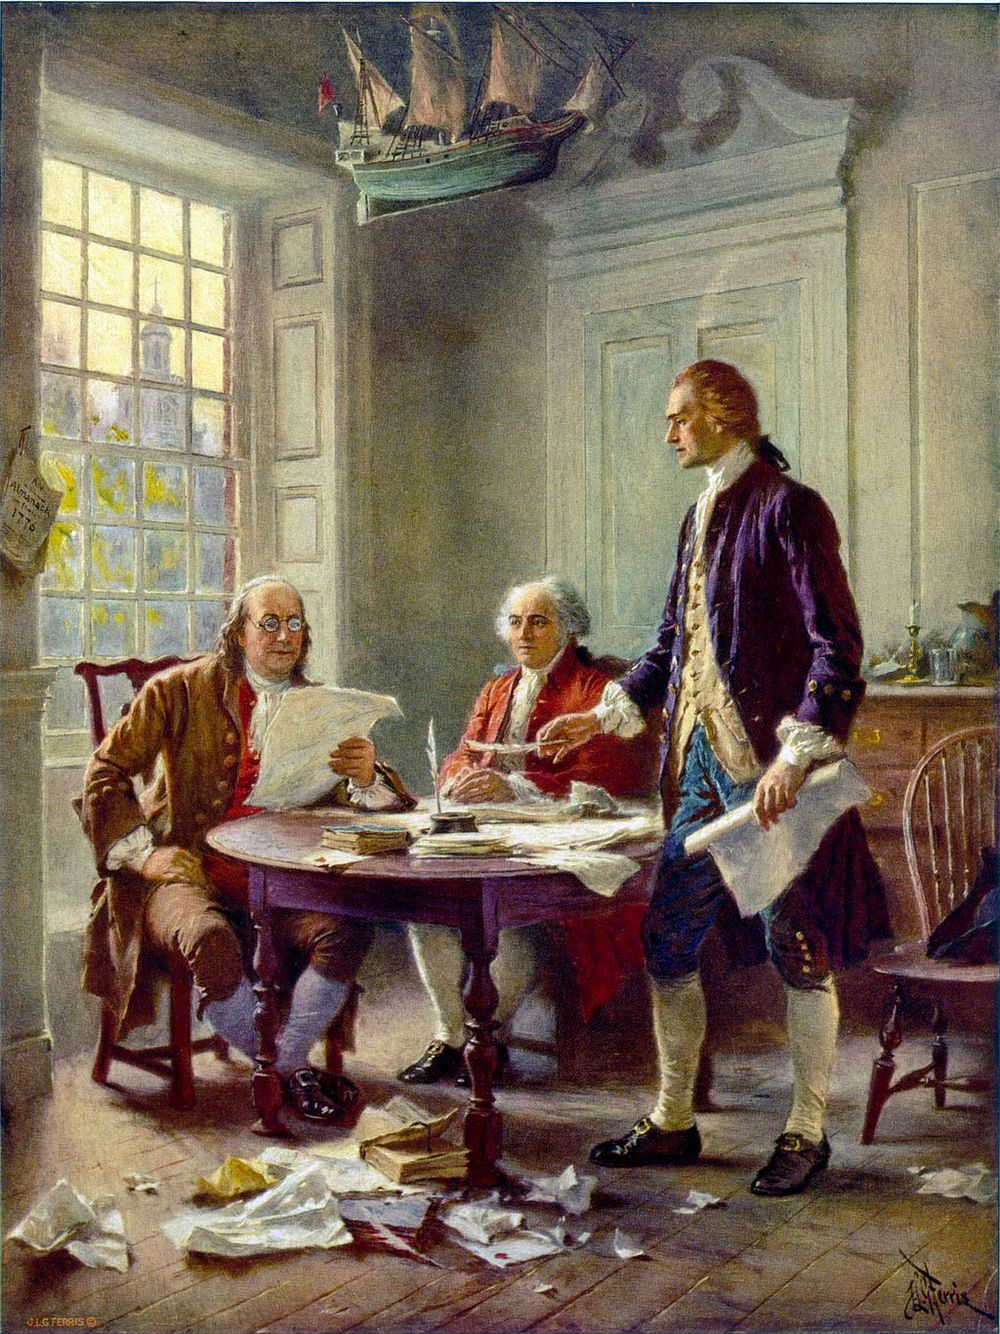 2. 1024px-Writing_the_Declaration_of_Independence_1776_cph.3g09904.jpg